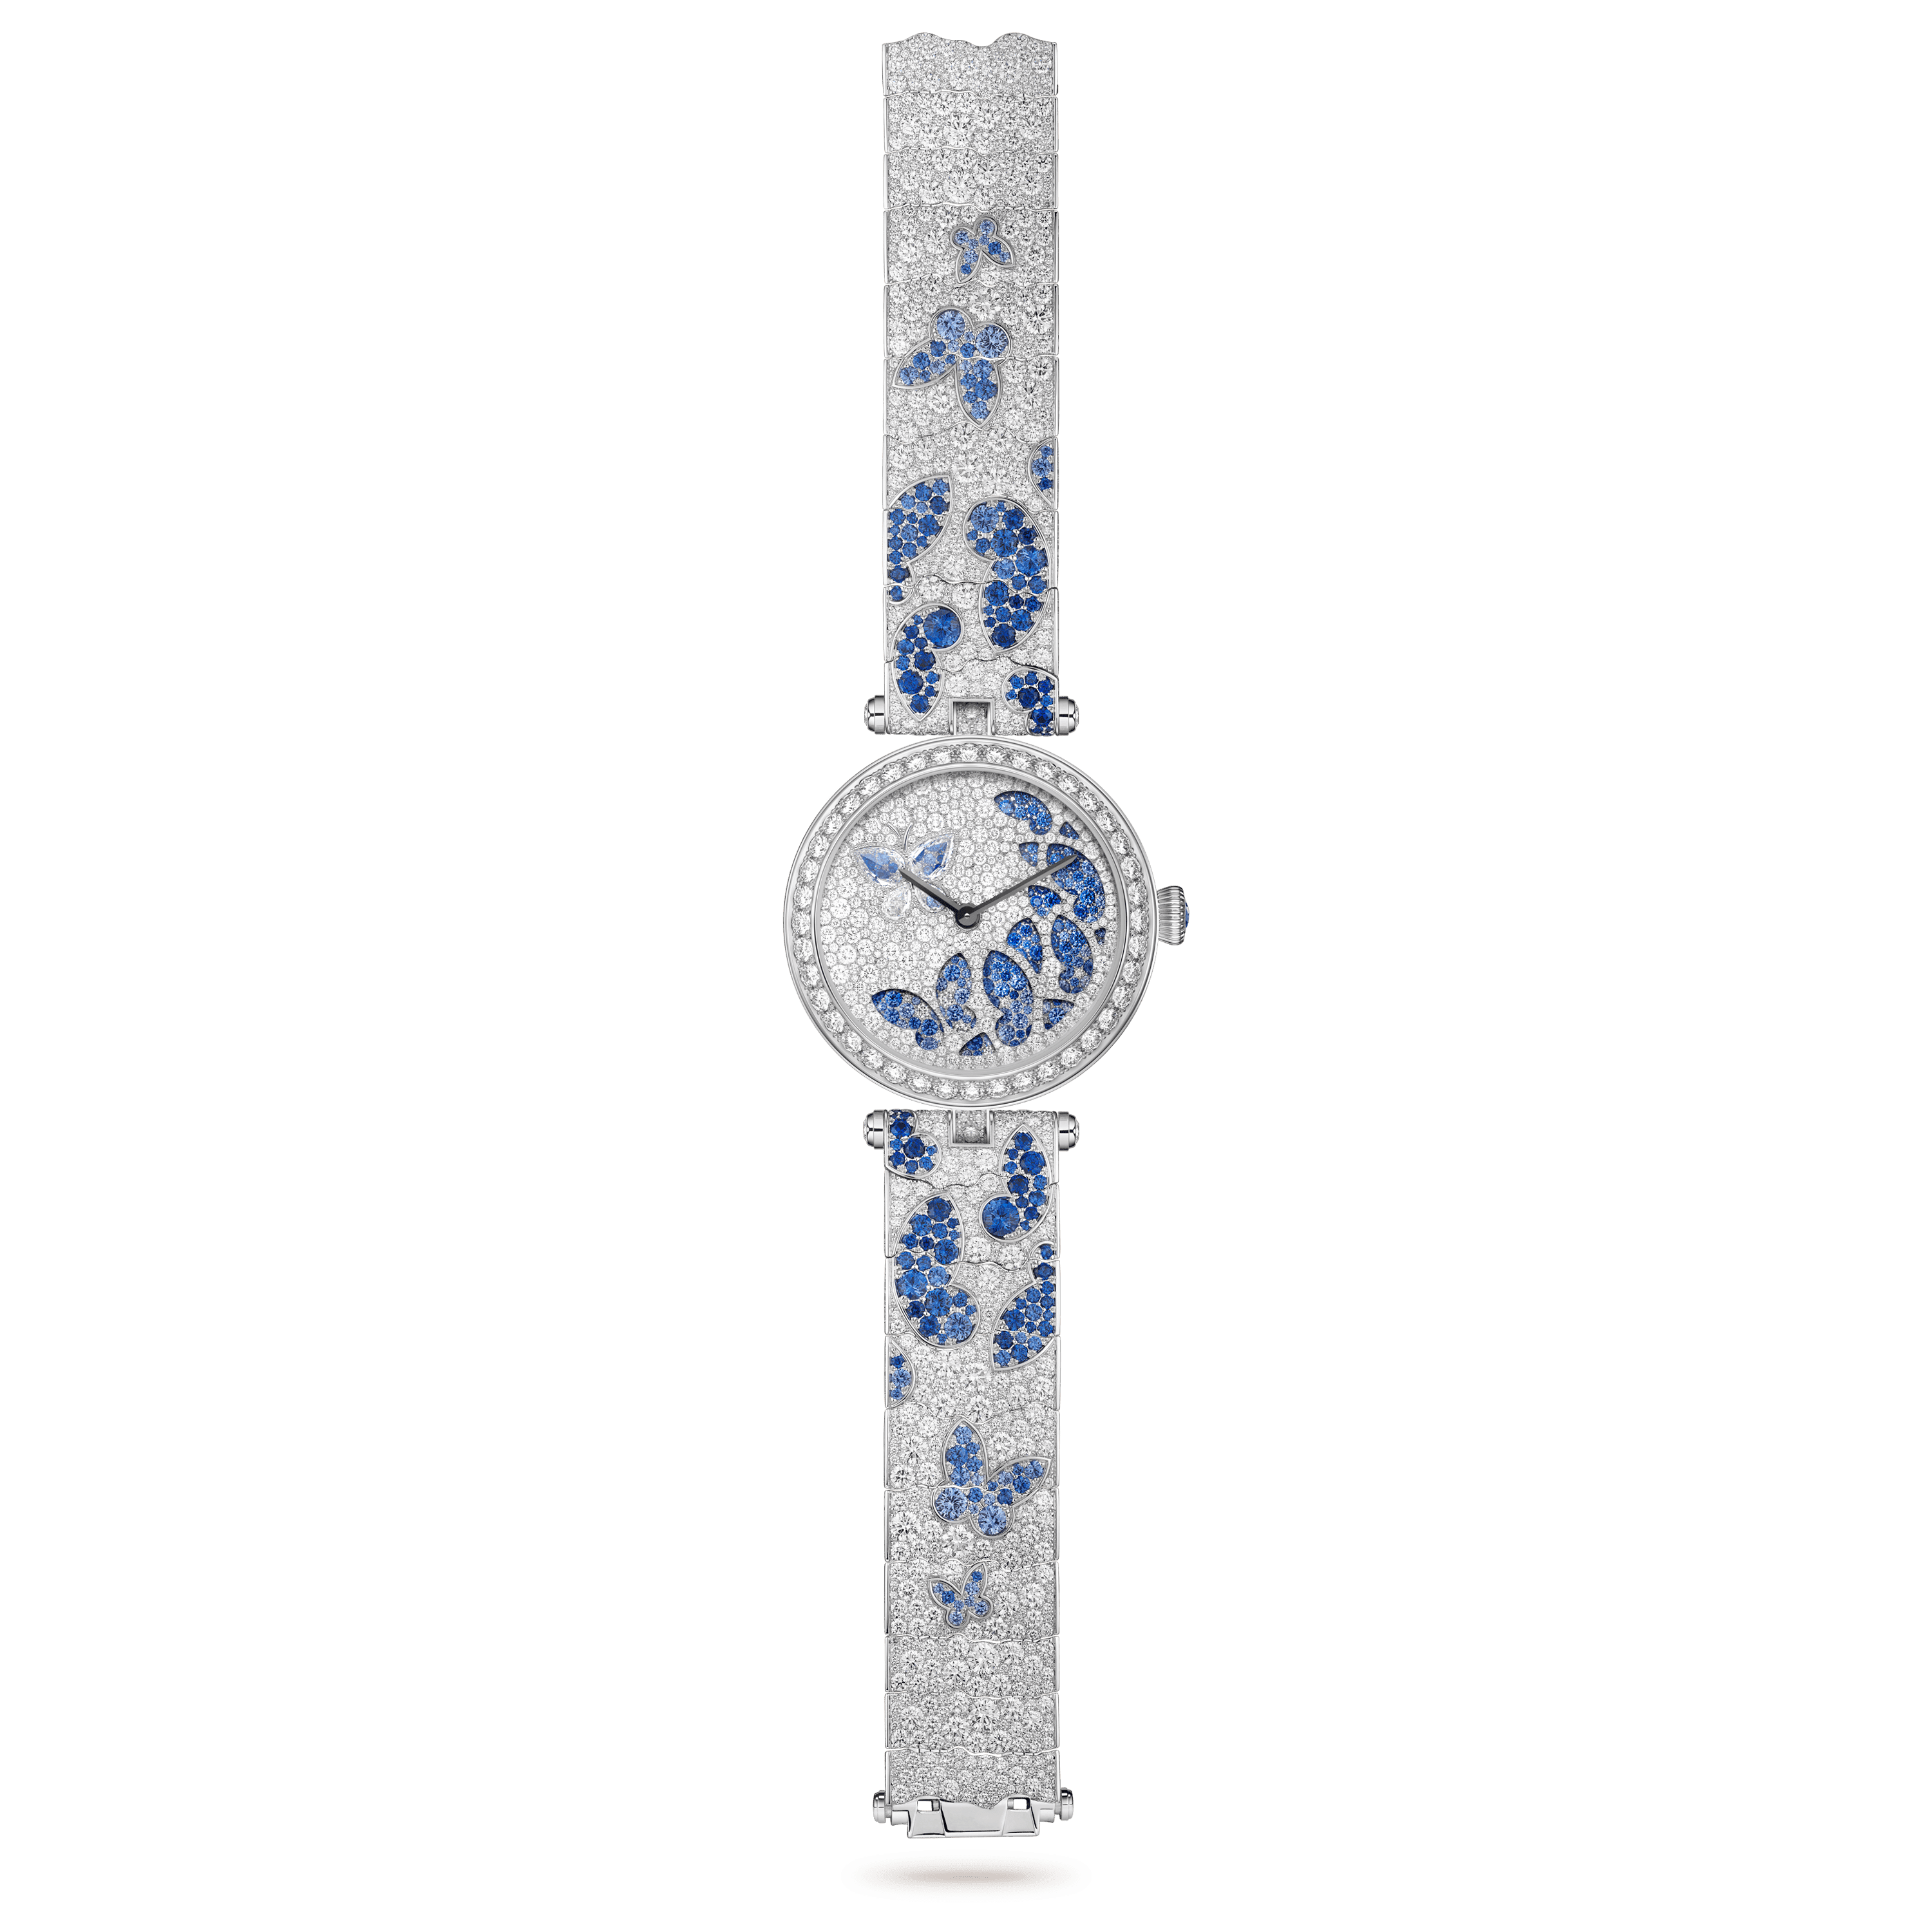 Lady Nuit des Papillons Watch,Gold - Open View - VCARO8O100 - Van Cleef & Arpels